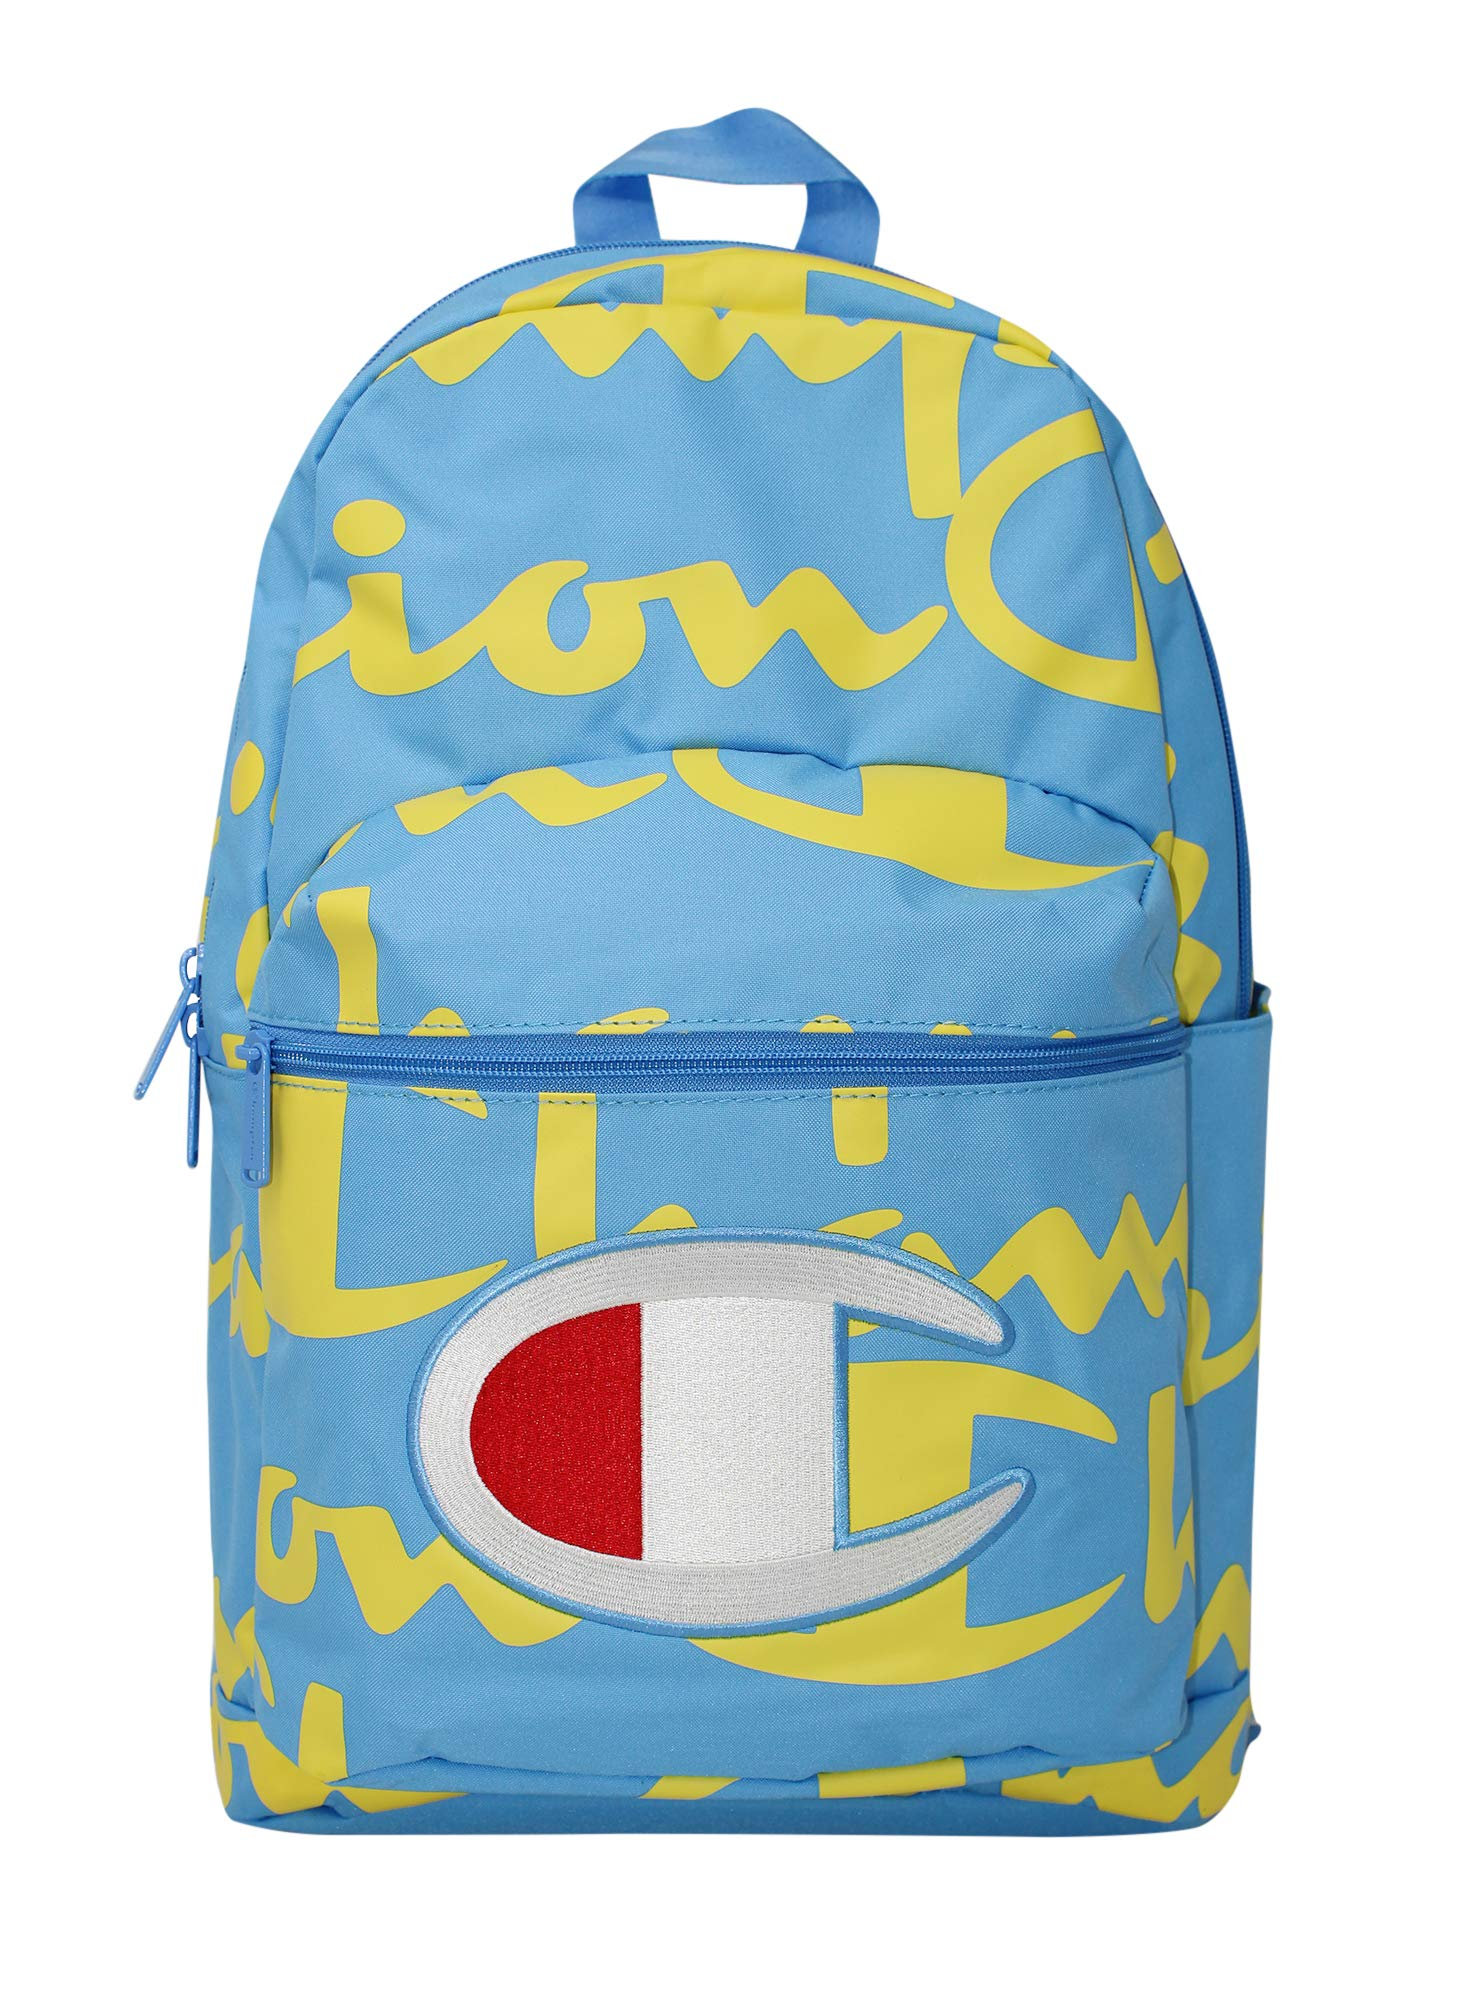 Champion Men's SuperCize Backpack, Blue/Yellow, OS by Champion